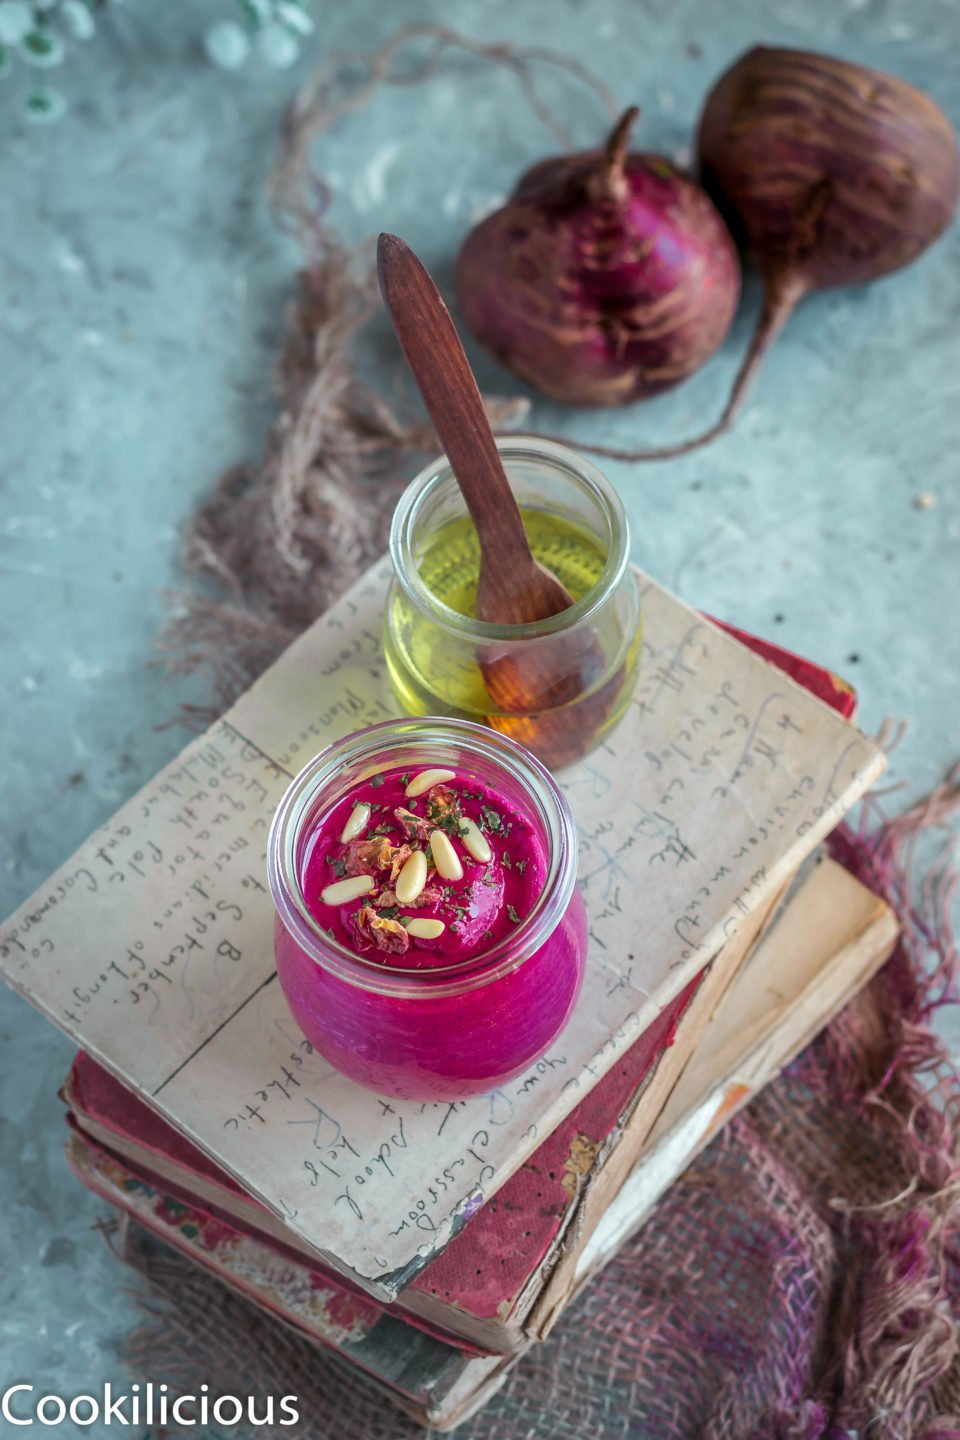 a jar of olive oil and beetroot pesto resting over a pile of books